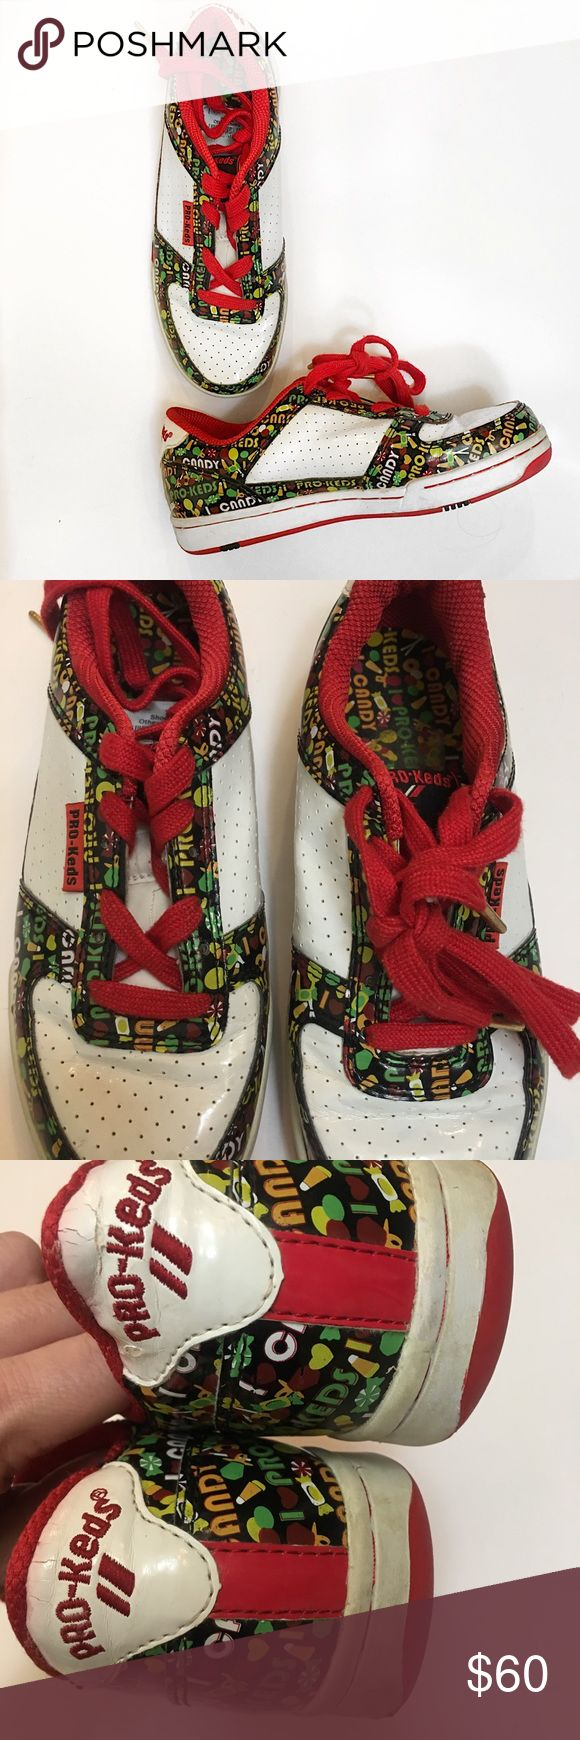 Rare pro keds candy series 7.5 7.5 Keds Shoes Athletic Shoes